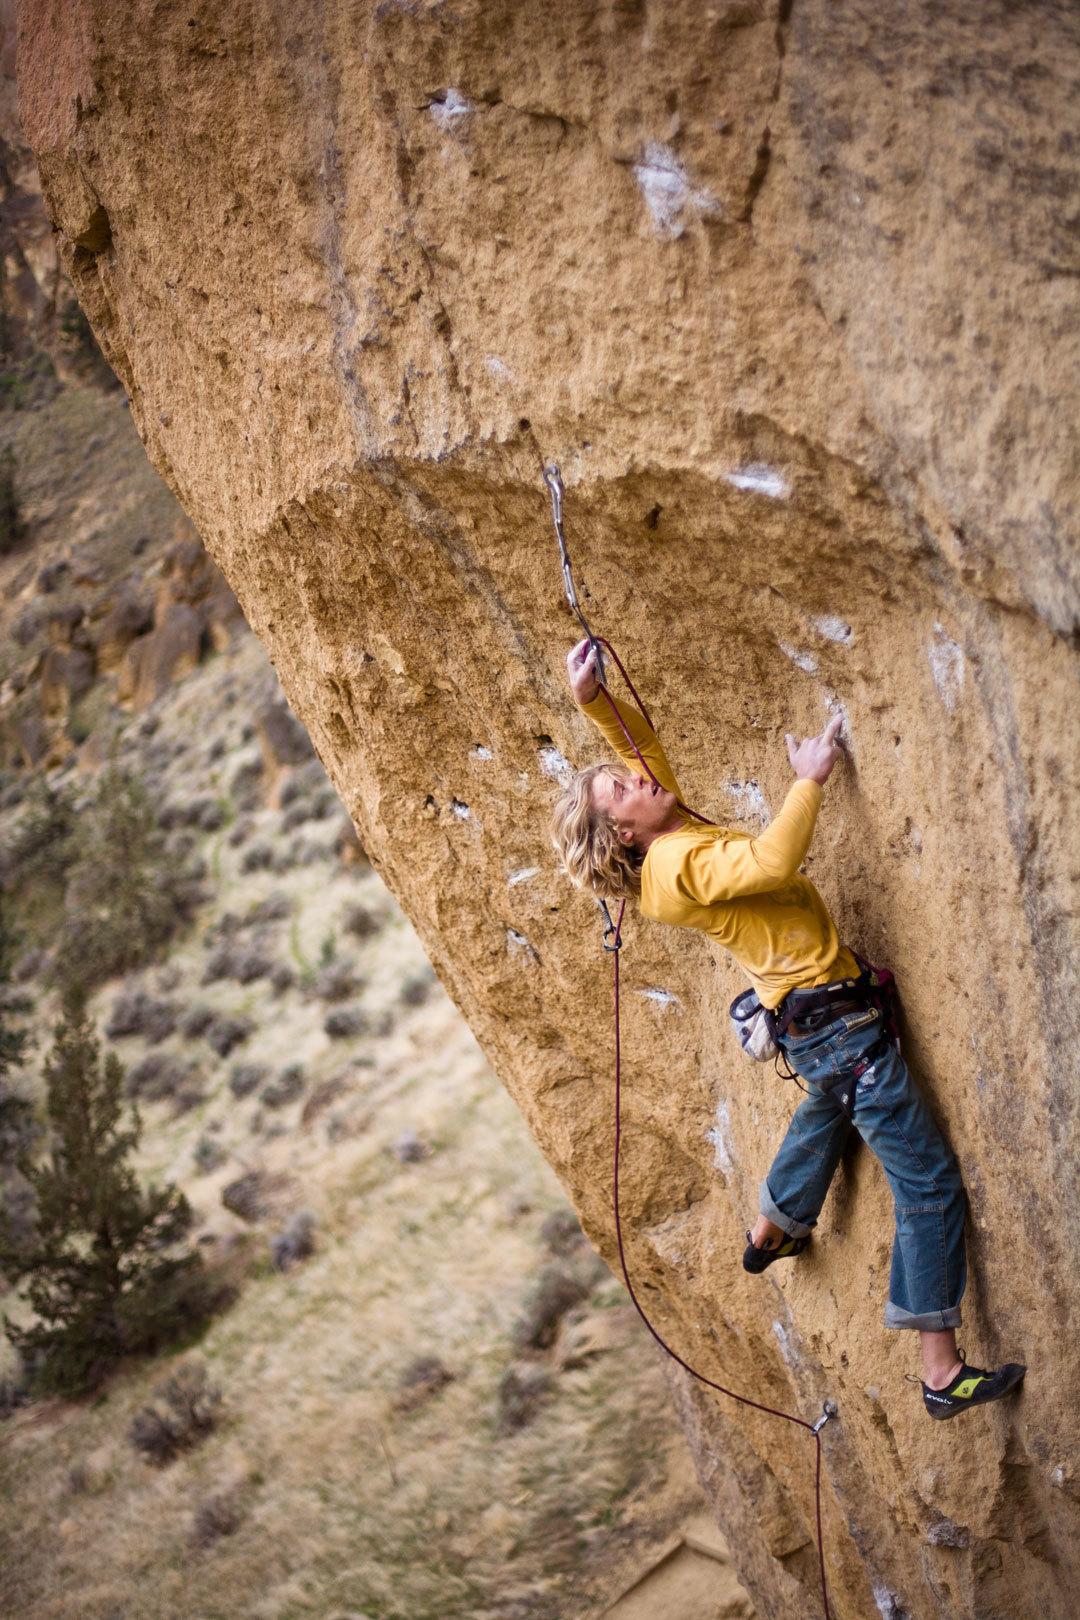 Chris Lindner, Rude Boys 5.13b Photo: BOONE SPEED